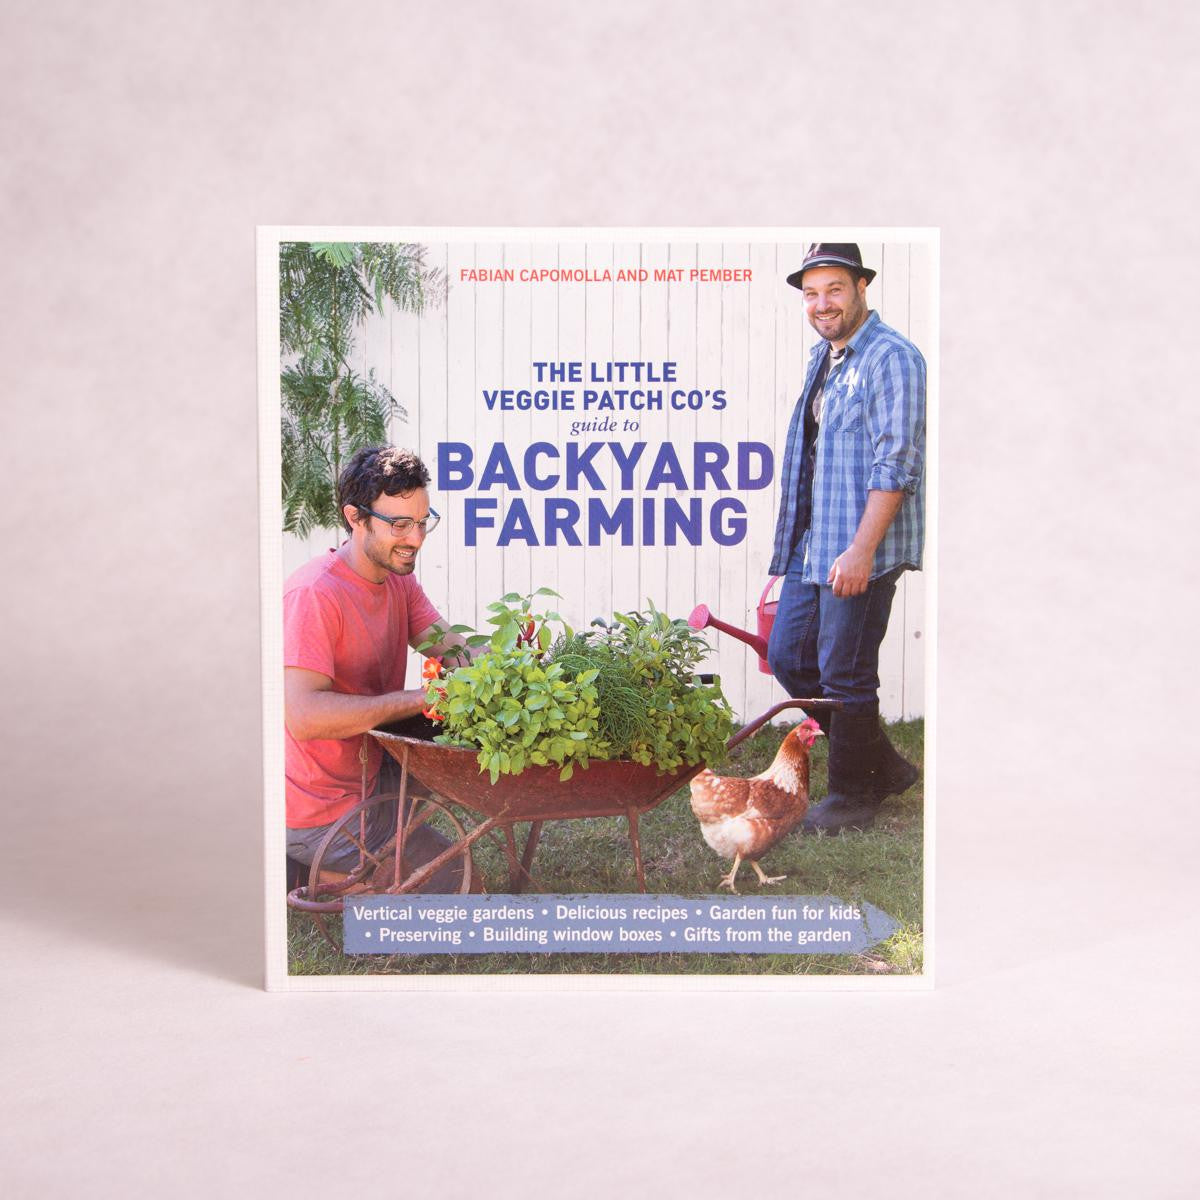 Guide to Backyard Farming | by the Little Veggie Patch Co - Gardening Books - Throw Some Seeds - Australian gardening gifts and eco products online!